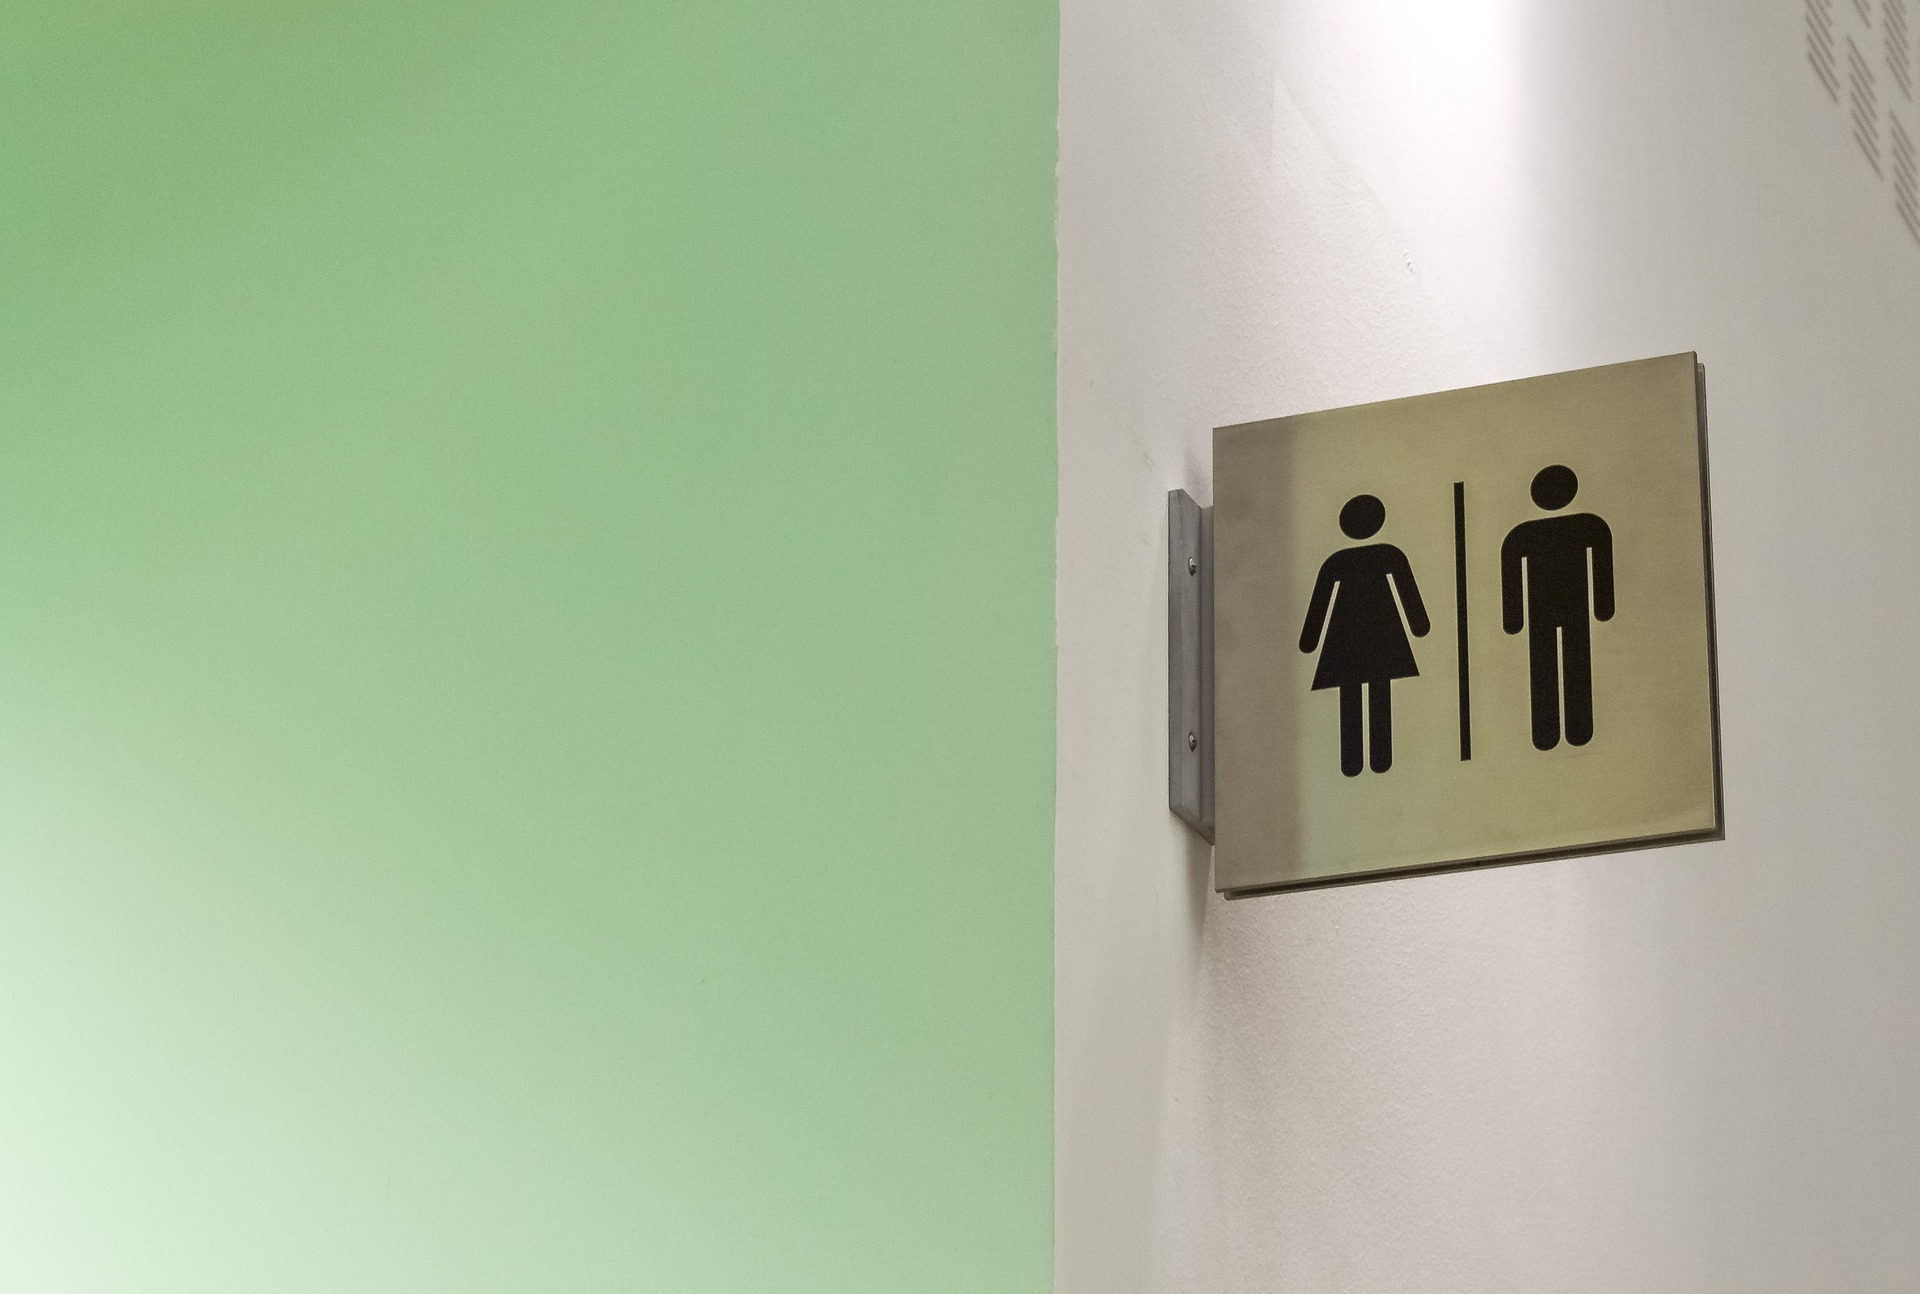 Here is What Needs to be Cleaned in the Restrooms of Your Facility